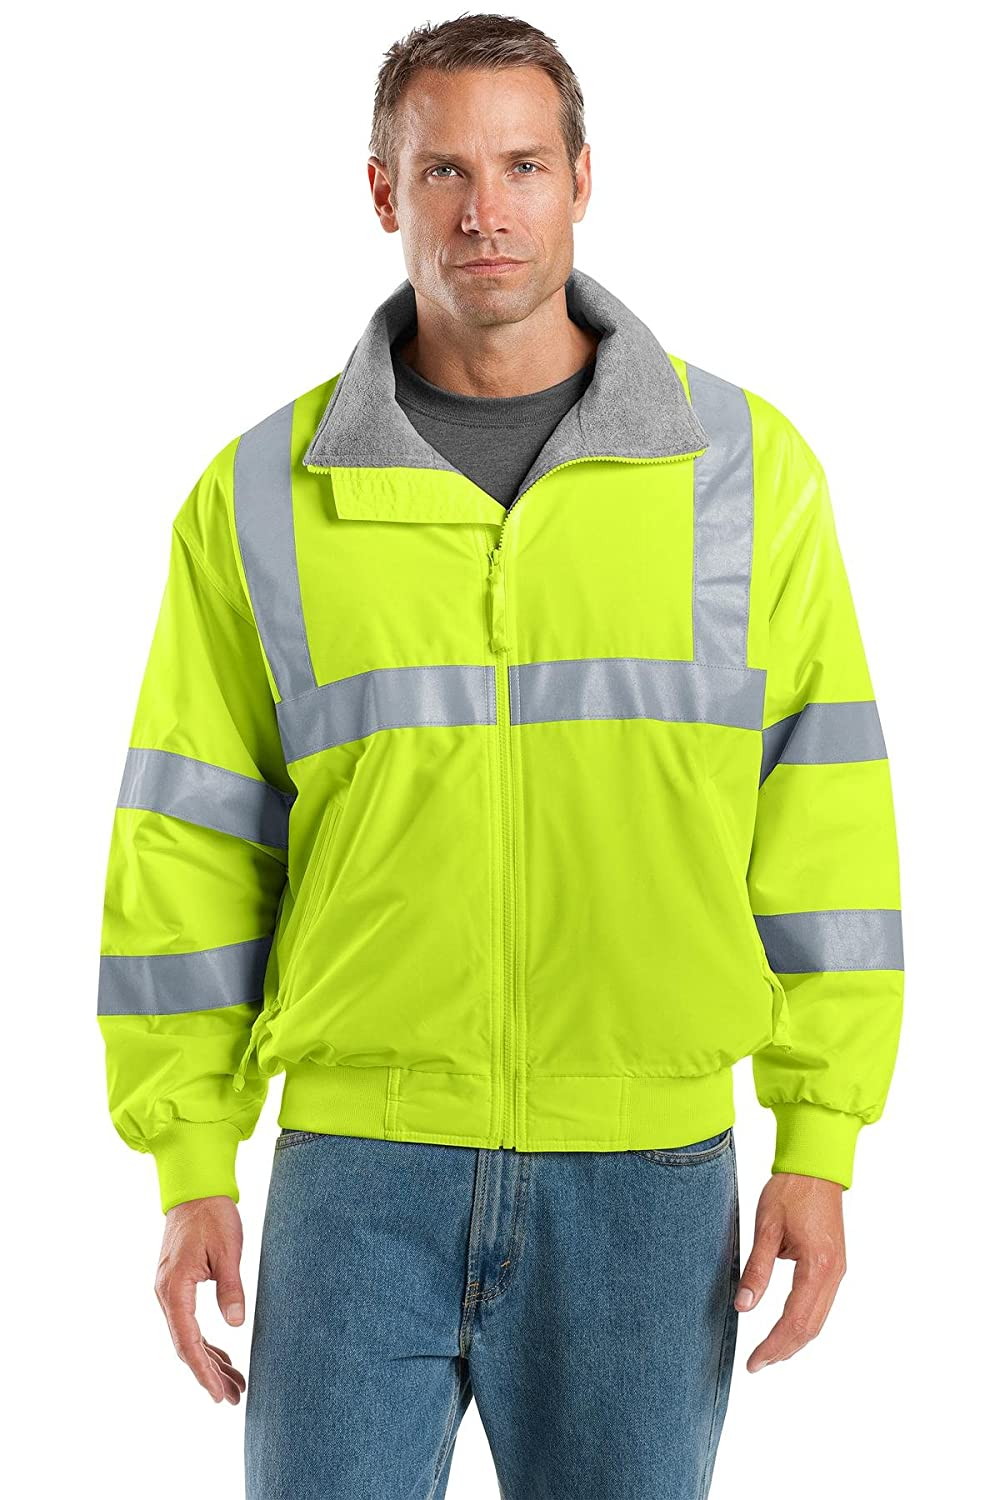 Port Authority OUTERWEAR メンズ B00MFQQAOW 4L|Safety Yellow/ Reflective Safety Yellow/ Reflective 4L